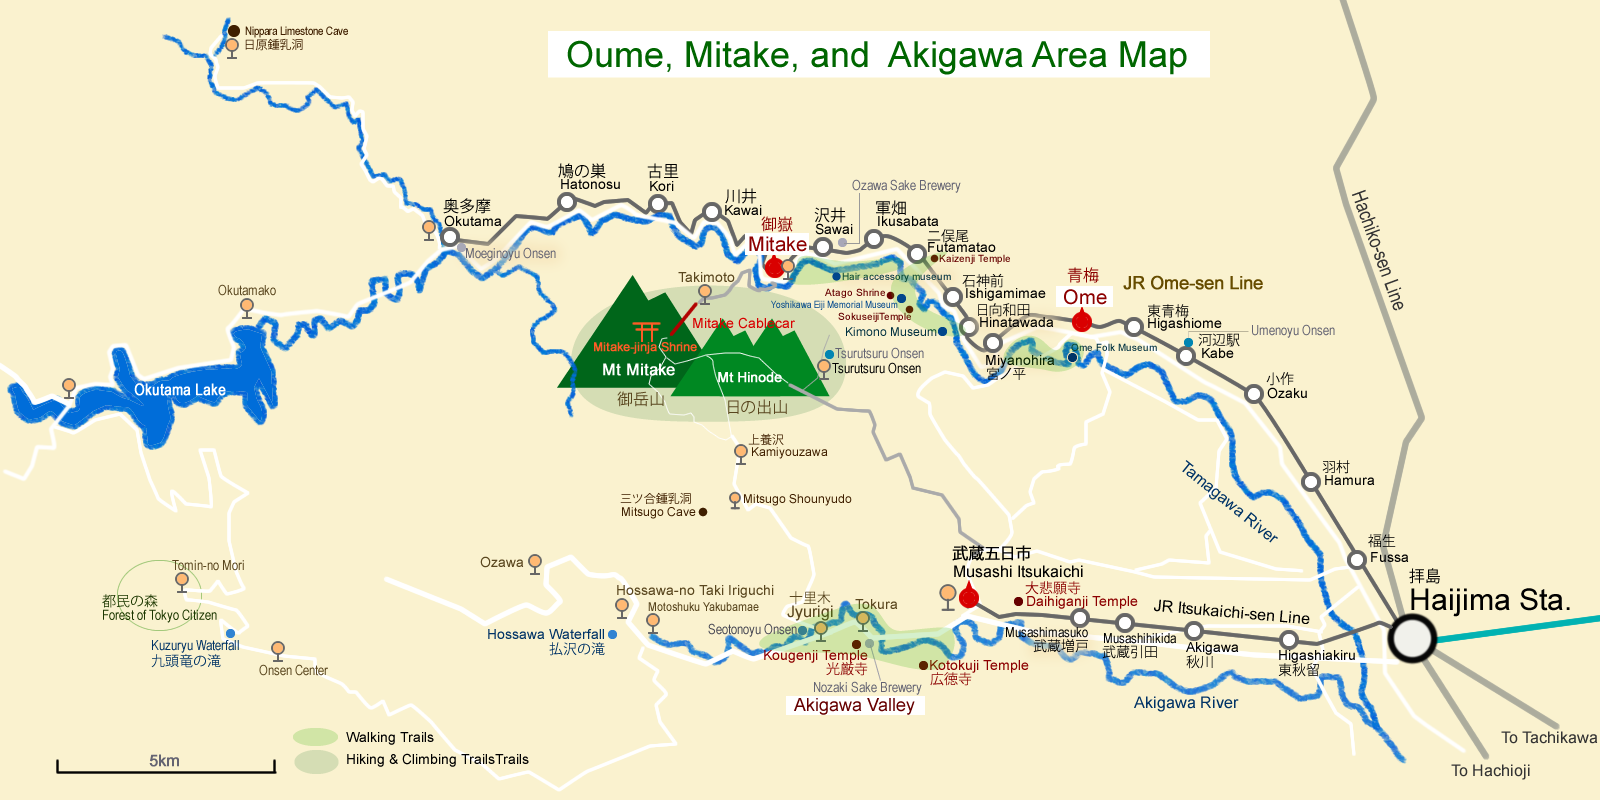 Mitakesan, Ome and Akigawa Valley Area Map